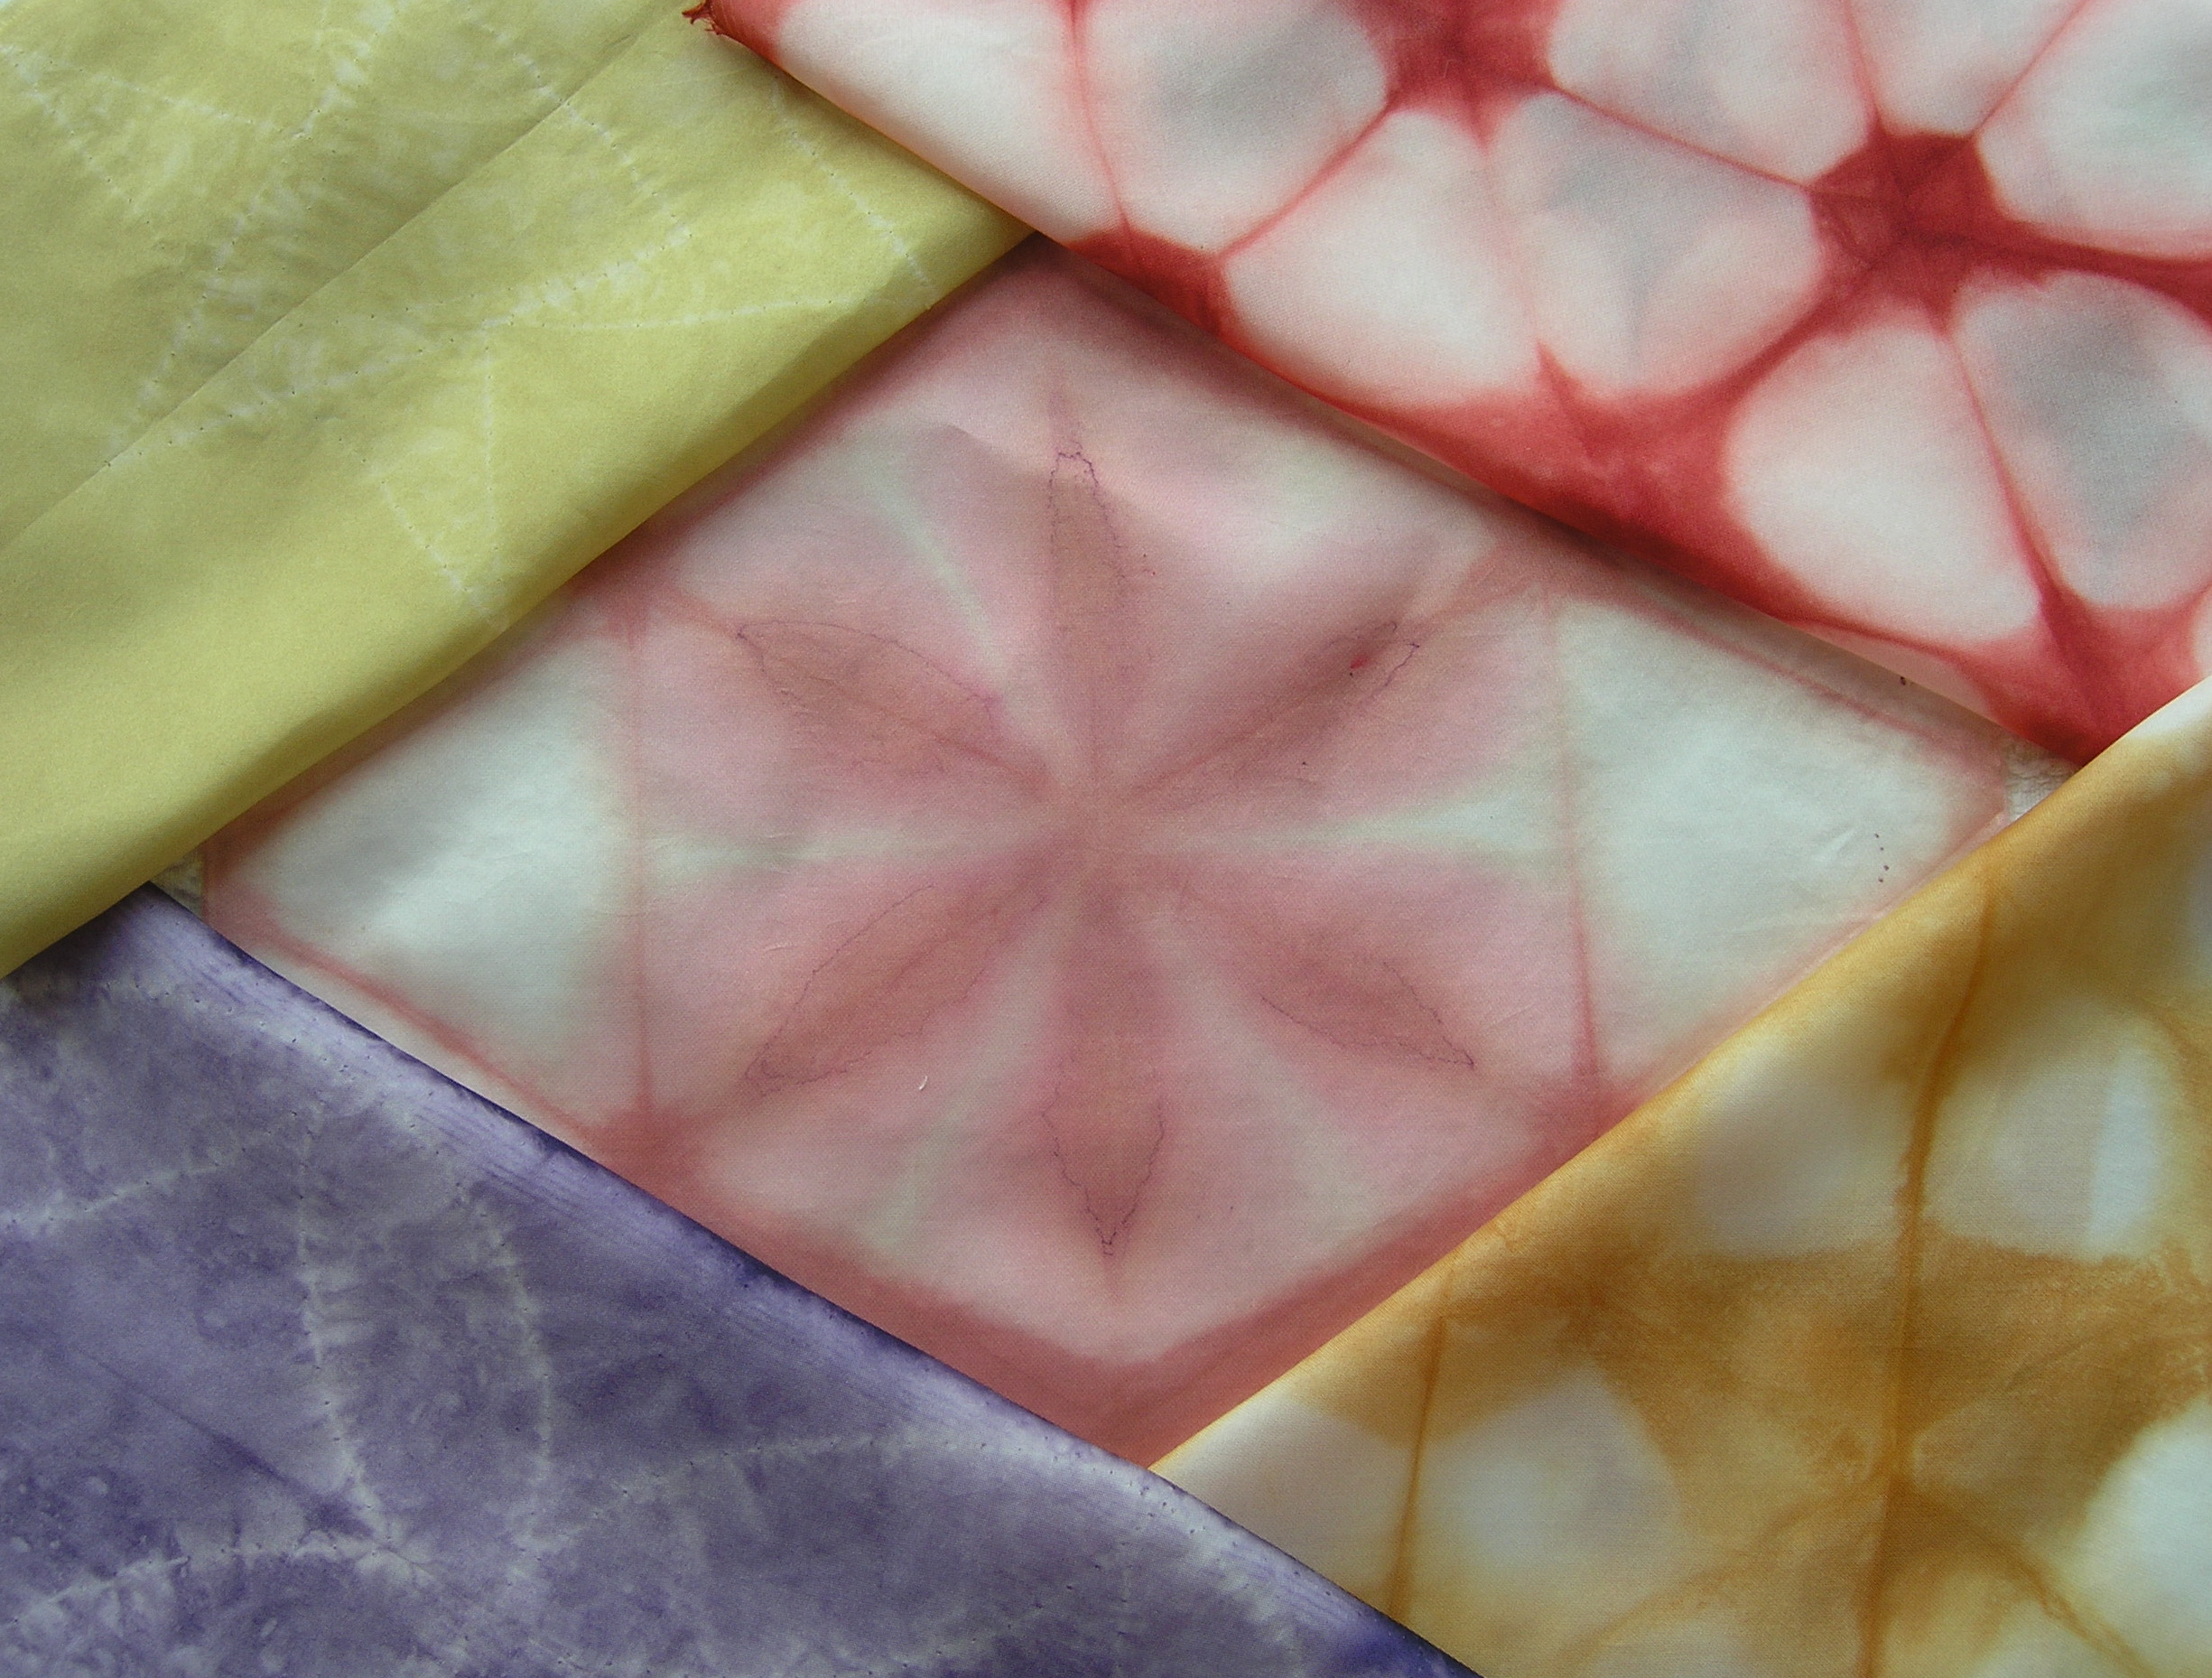 patches of tie dyed fabric in reds, yellows and blues